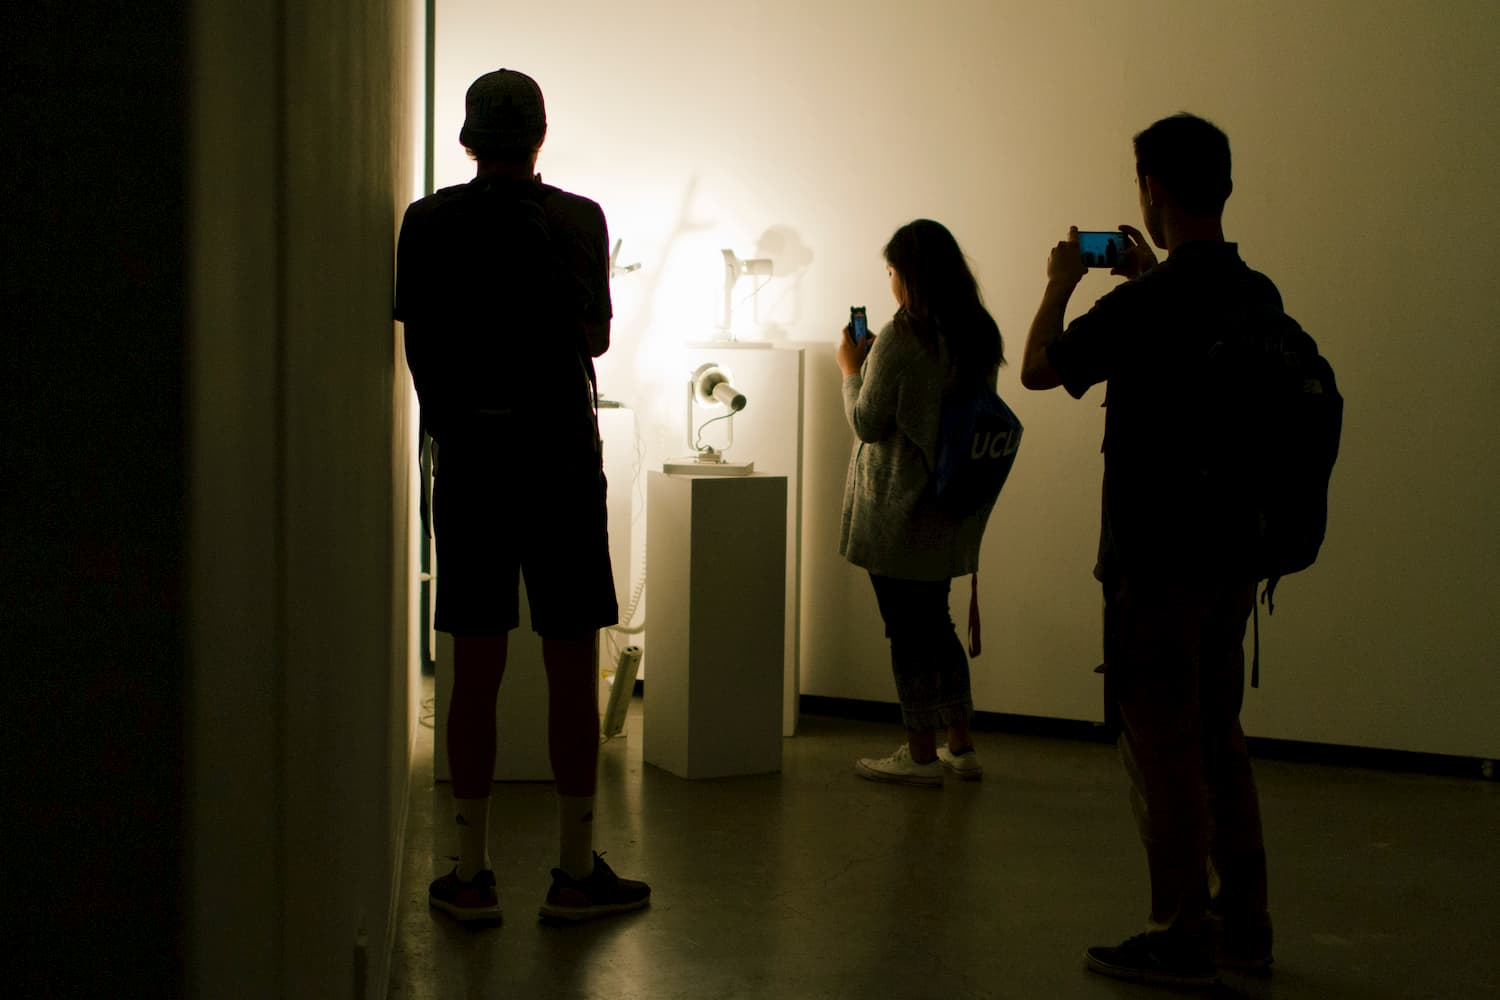 Series of lamps aimed toward a wall during YOUJIN CHUNG's solo show.